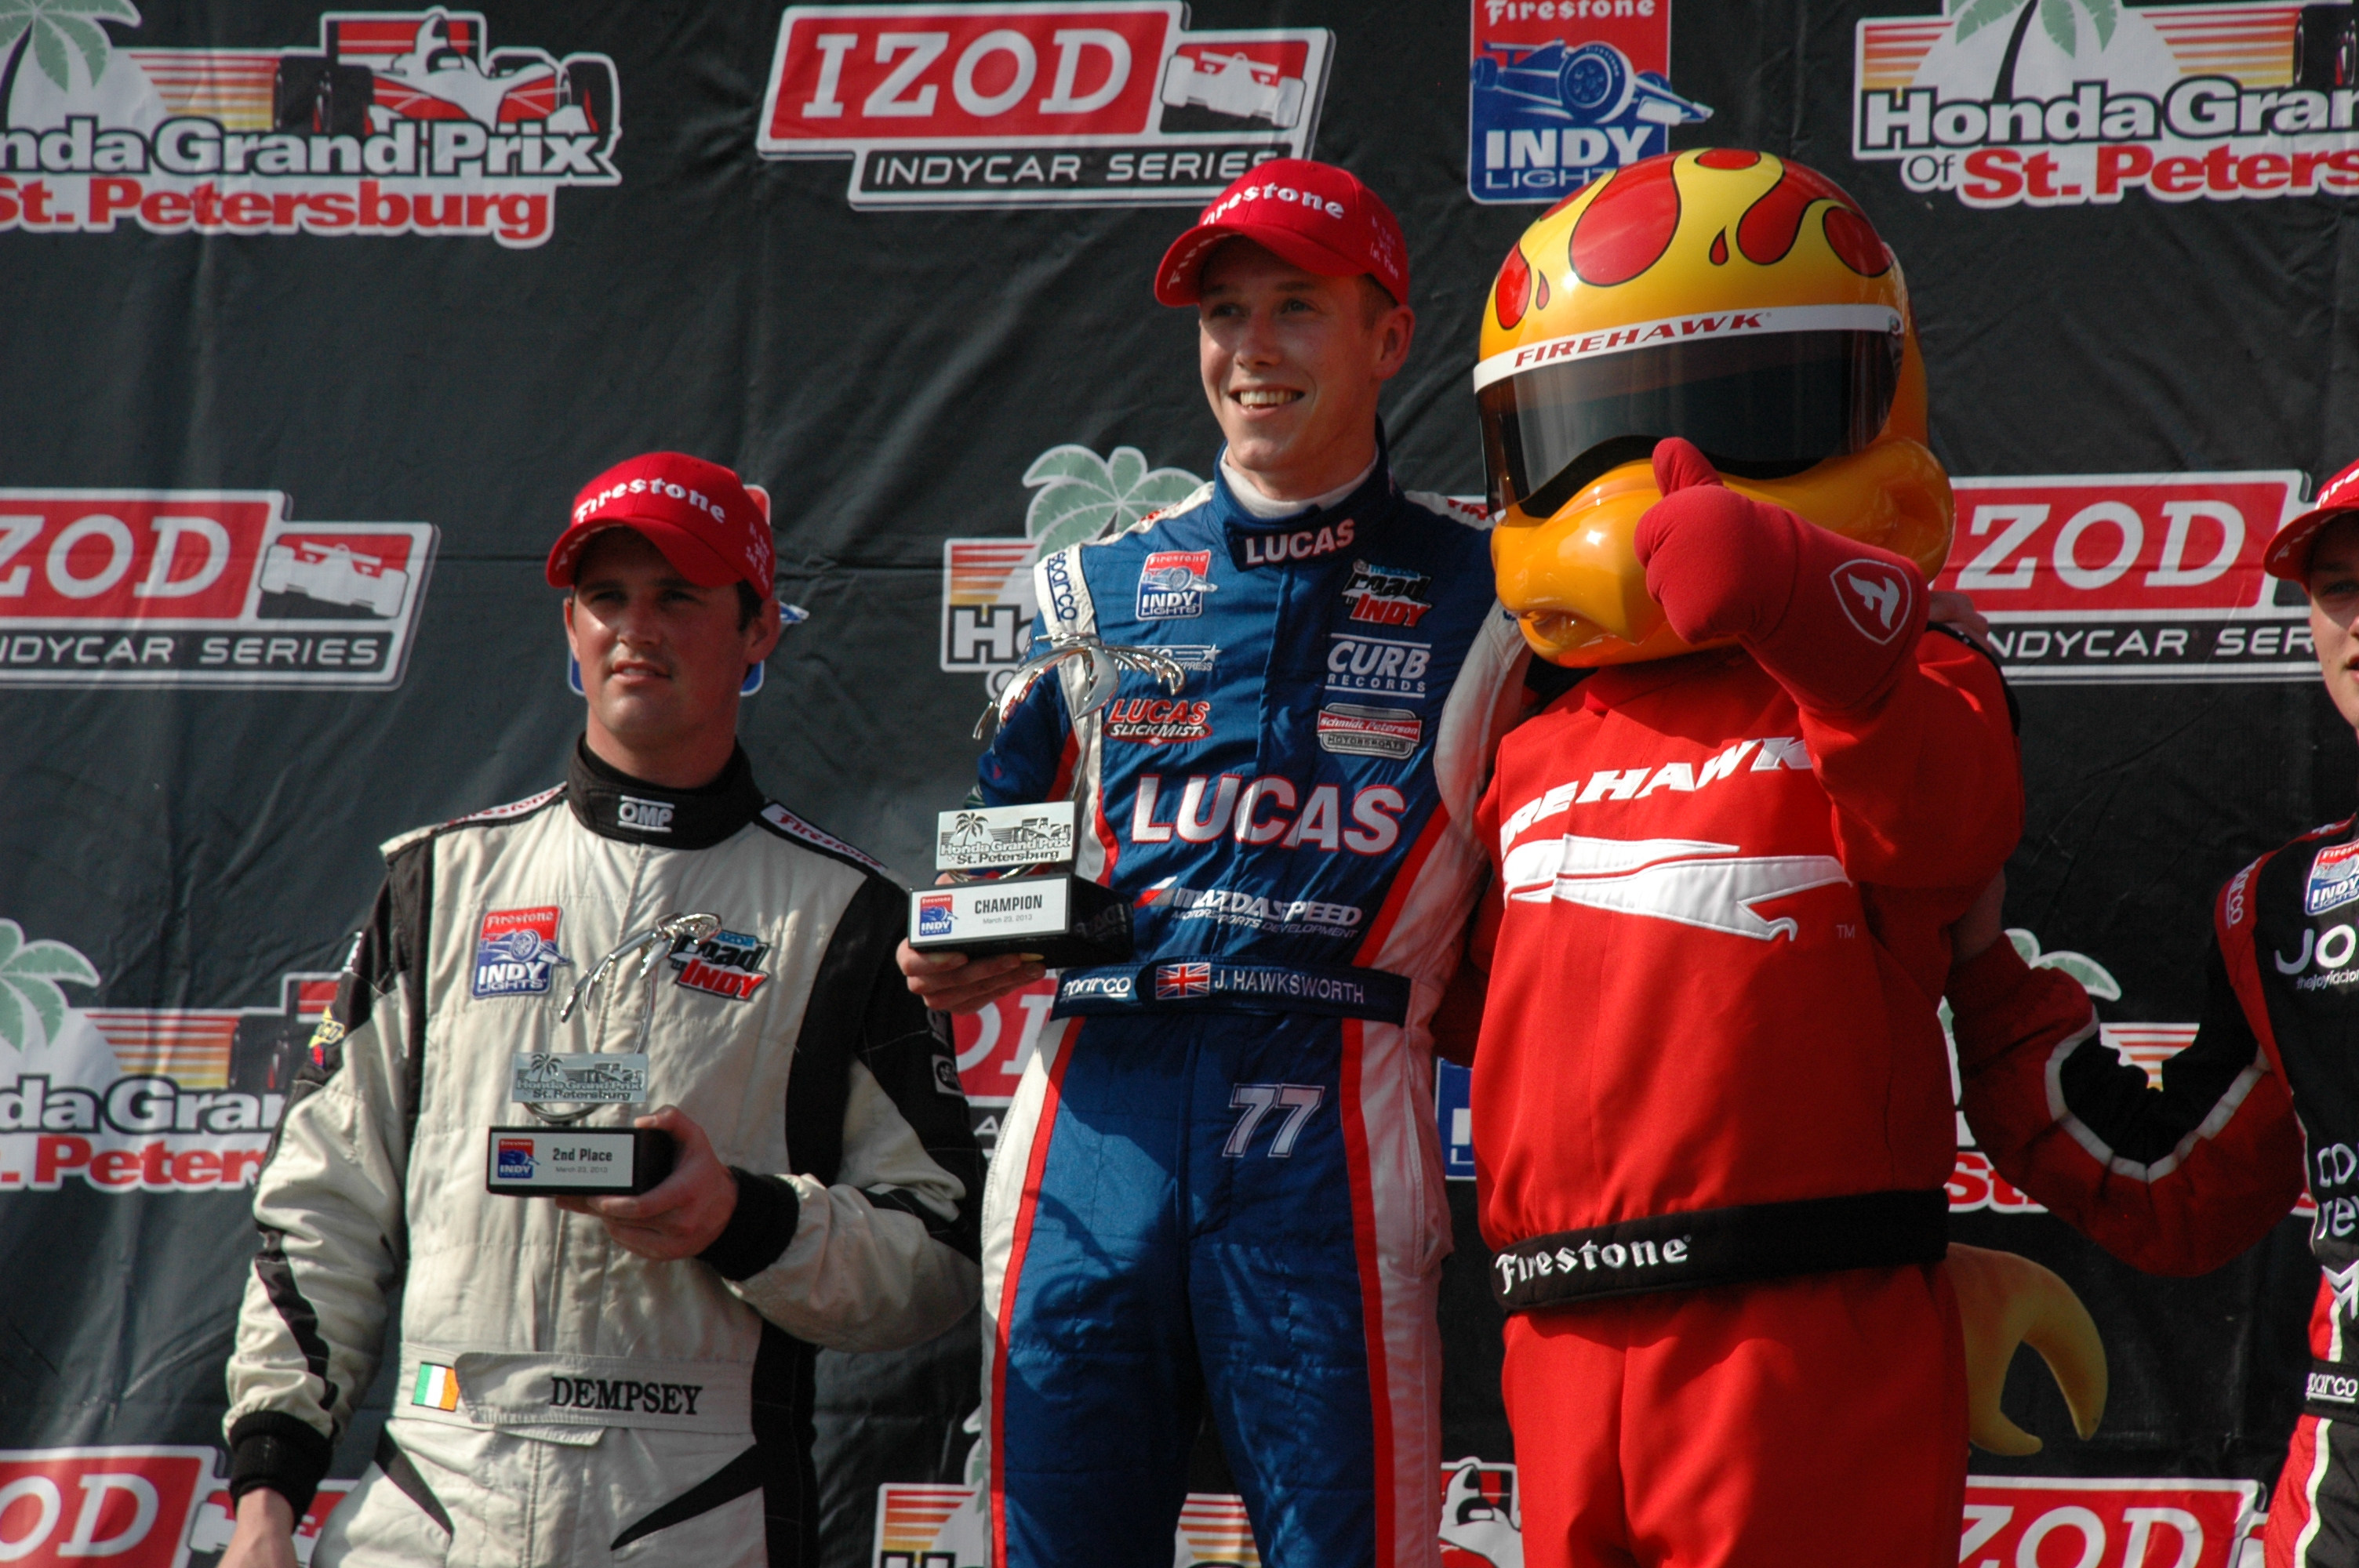 On the podium with Firehawk from Firestone, Dempsey (left) and Hawksworth. (photo: Rick Sassone / Rocket Sports & Entertainment Network)